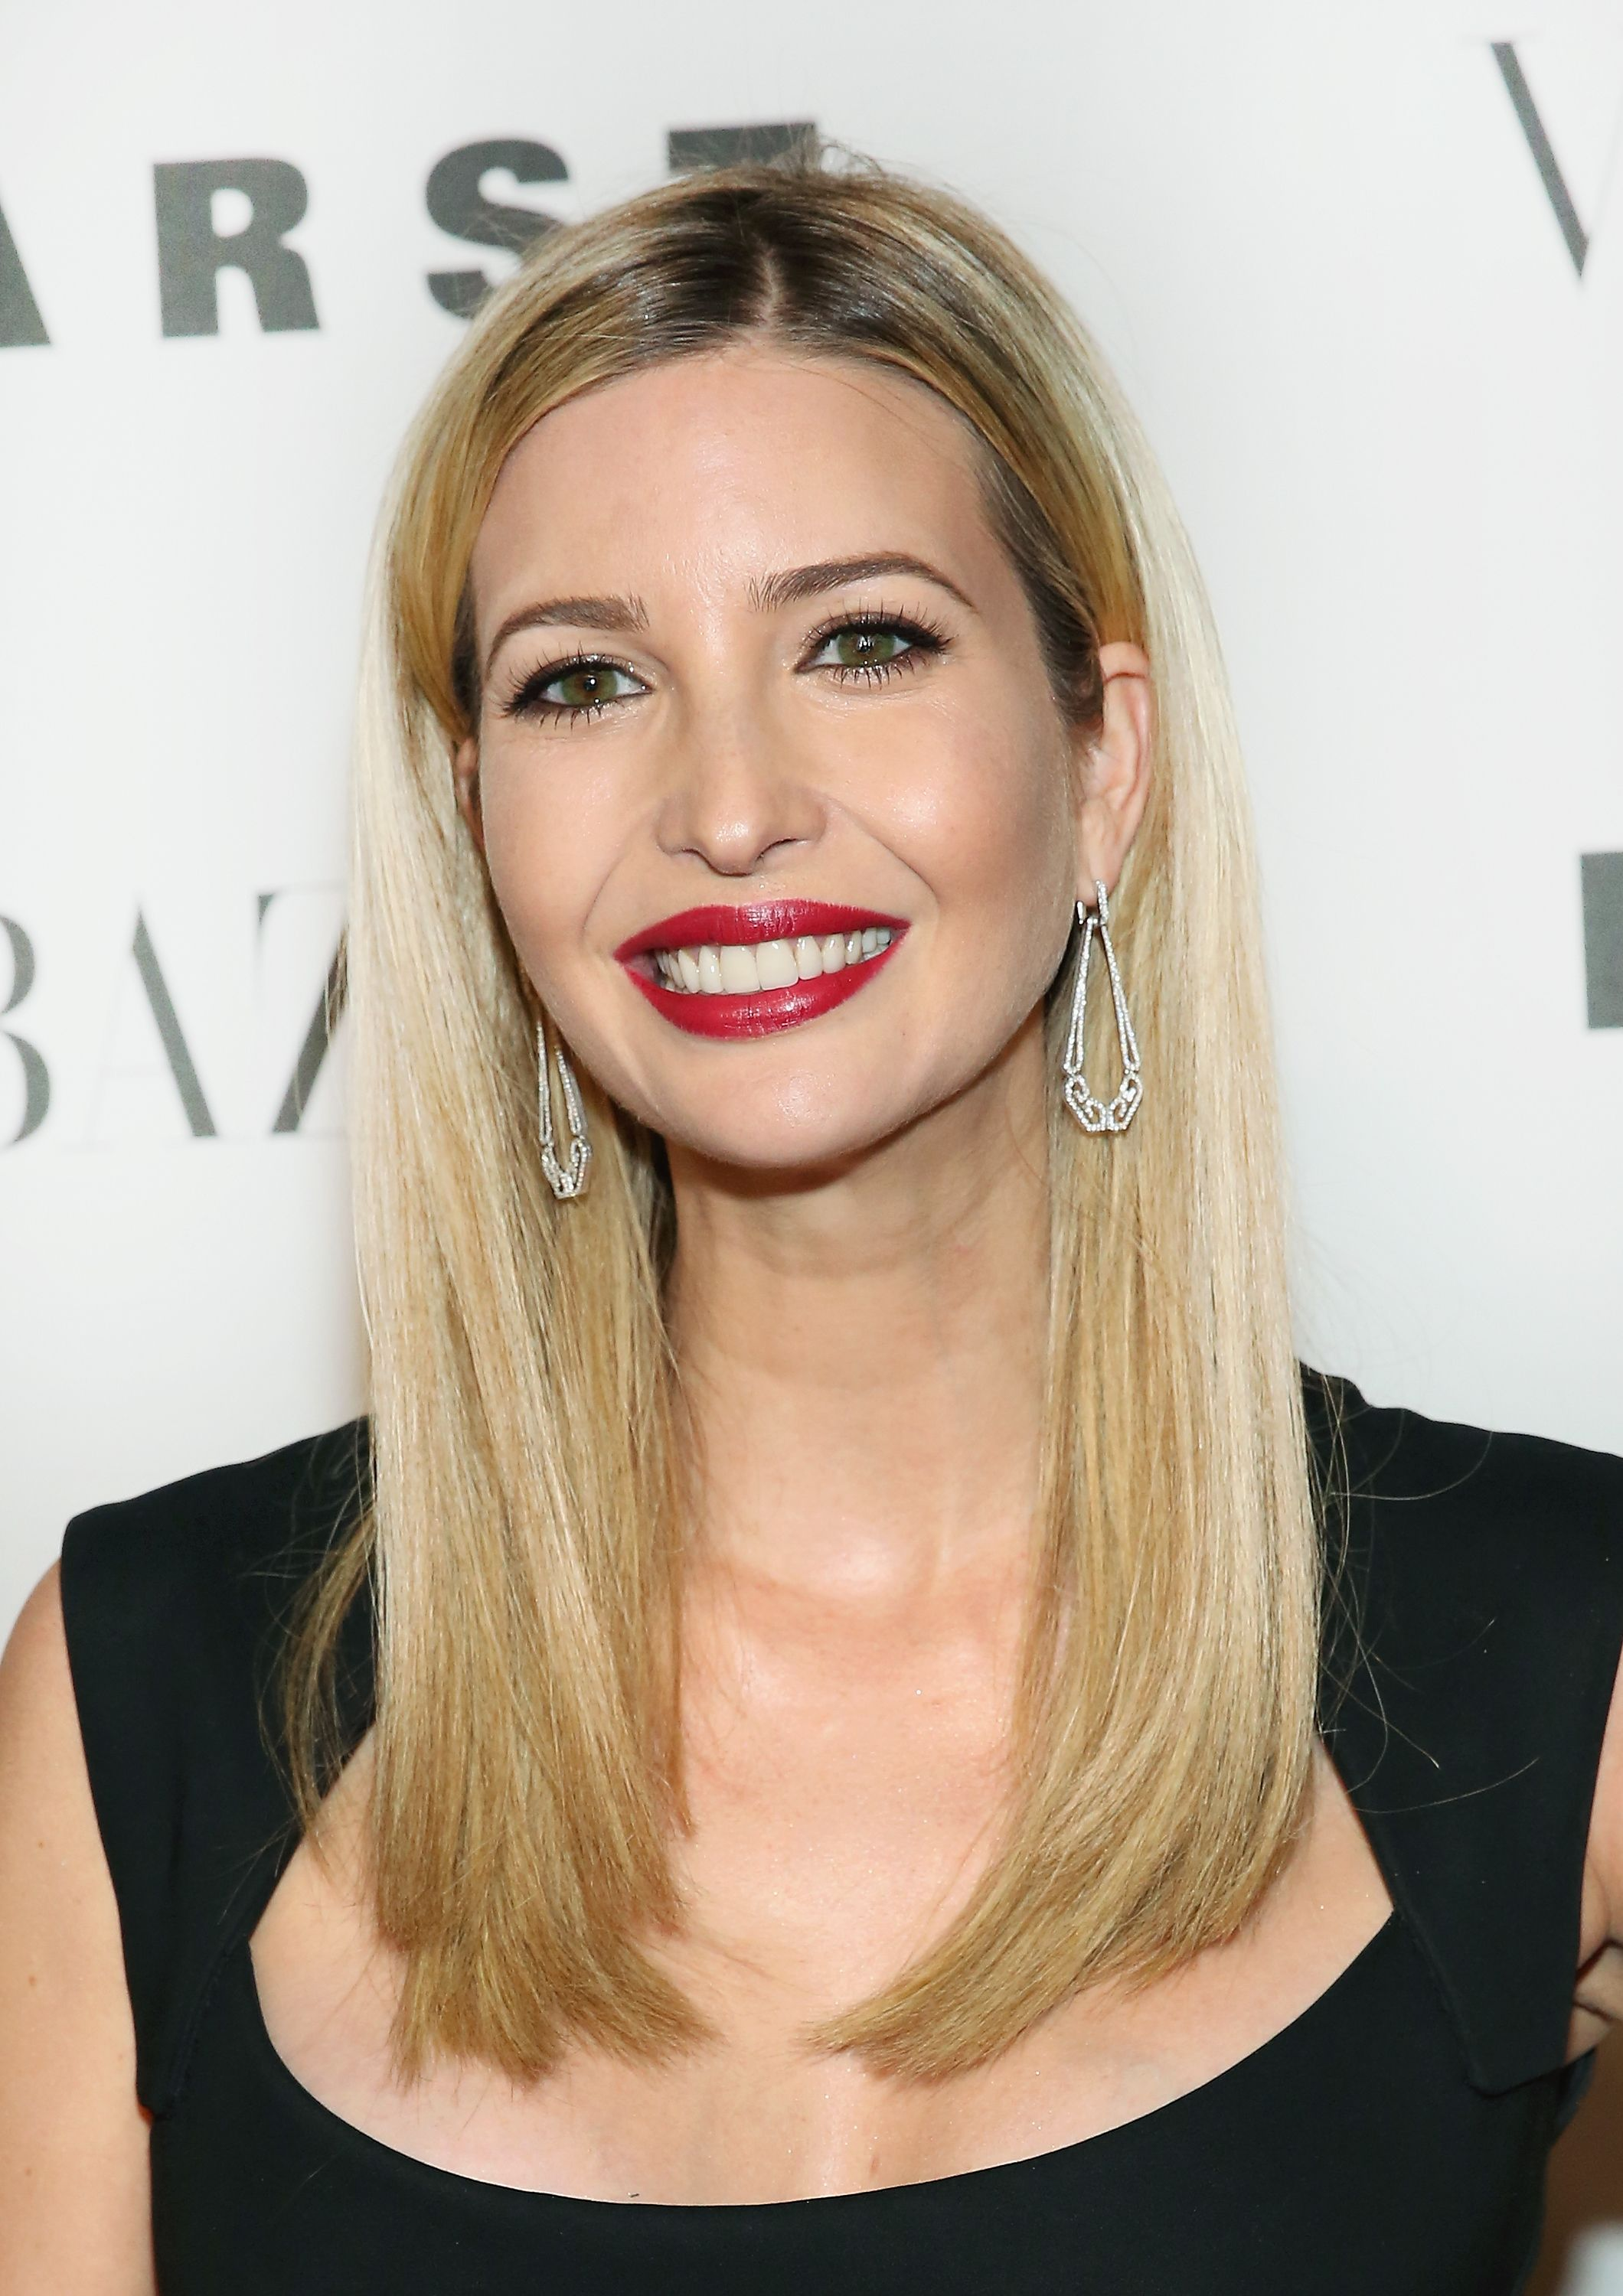 ivanka trump styleivanka trump instagram, ivanka trump туфли, ivanka trump одежда, ivanka trump bags, ivanka trump style, ivanka trump collection, ivanka trump young, ivanka trump brand, ivanka trump interview, ivanka trump бренд, ivanka trump wiki, ivanka trump размерная сетка, ivanka trump dresses, ivanka trump wikipedia, ivanka trump 2017, ivanka trump book, ivanka trump wedding dress, ivanka trump age, ivanka trump twitter, ivanka trump духи